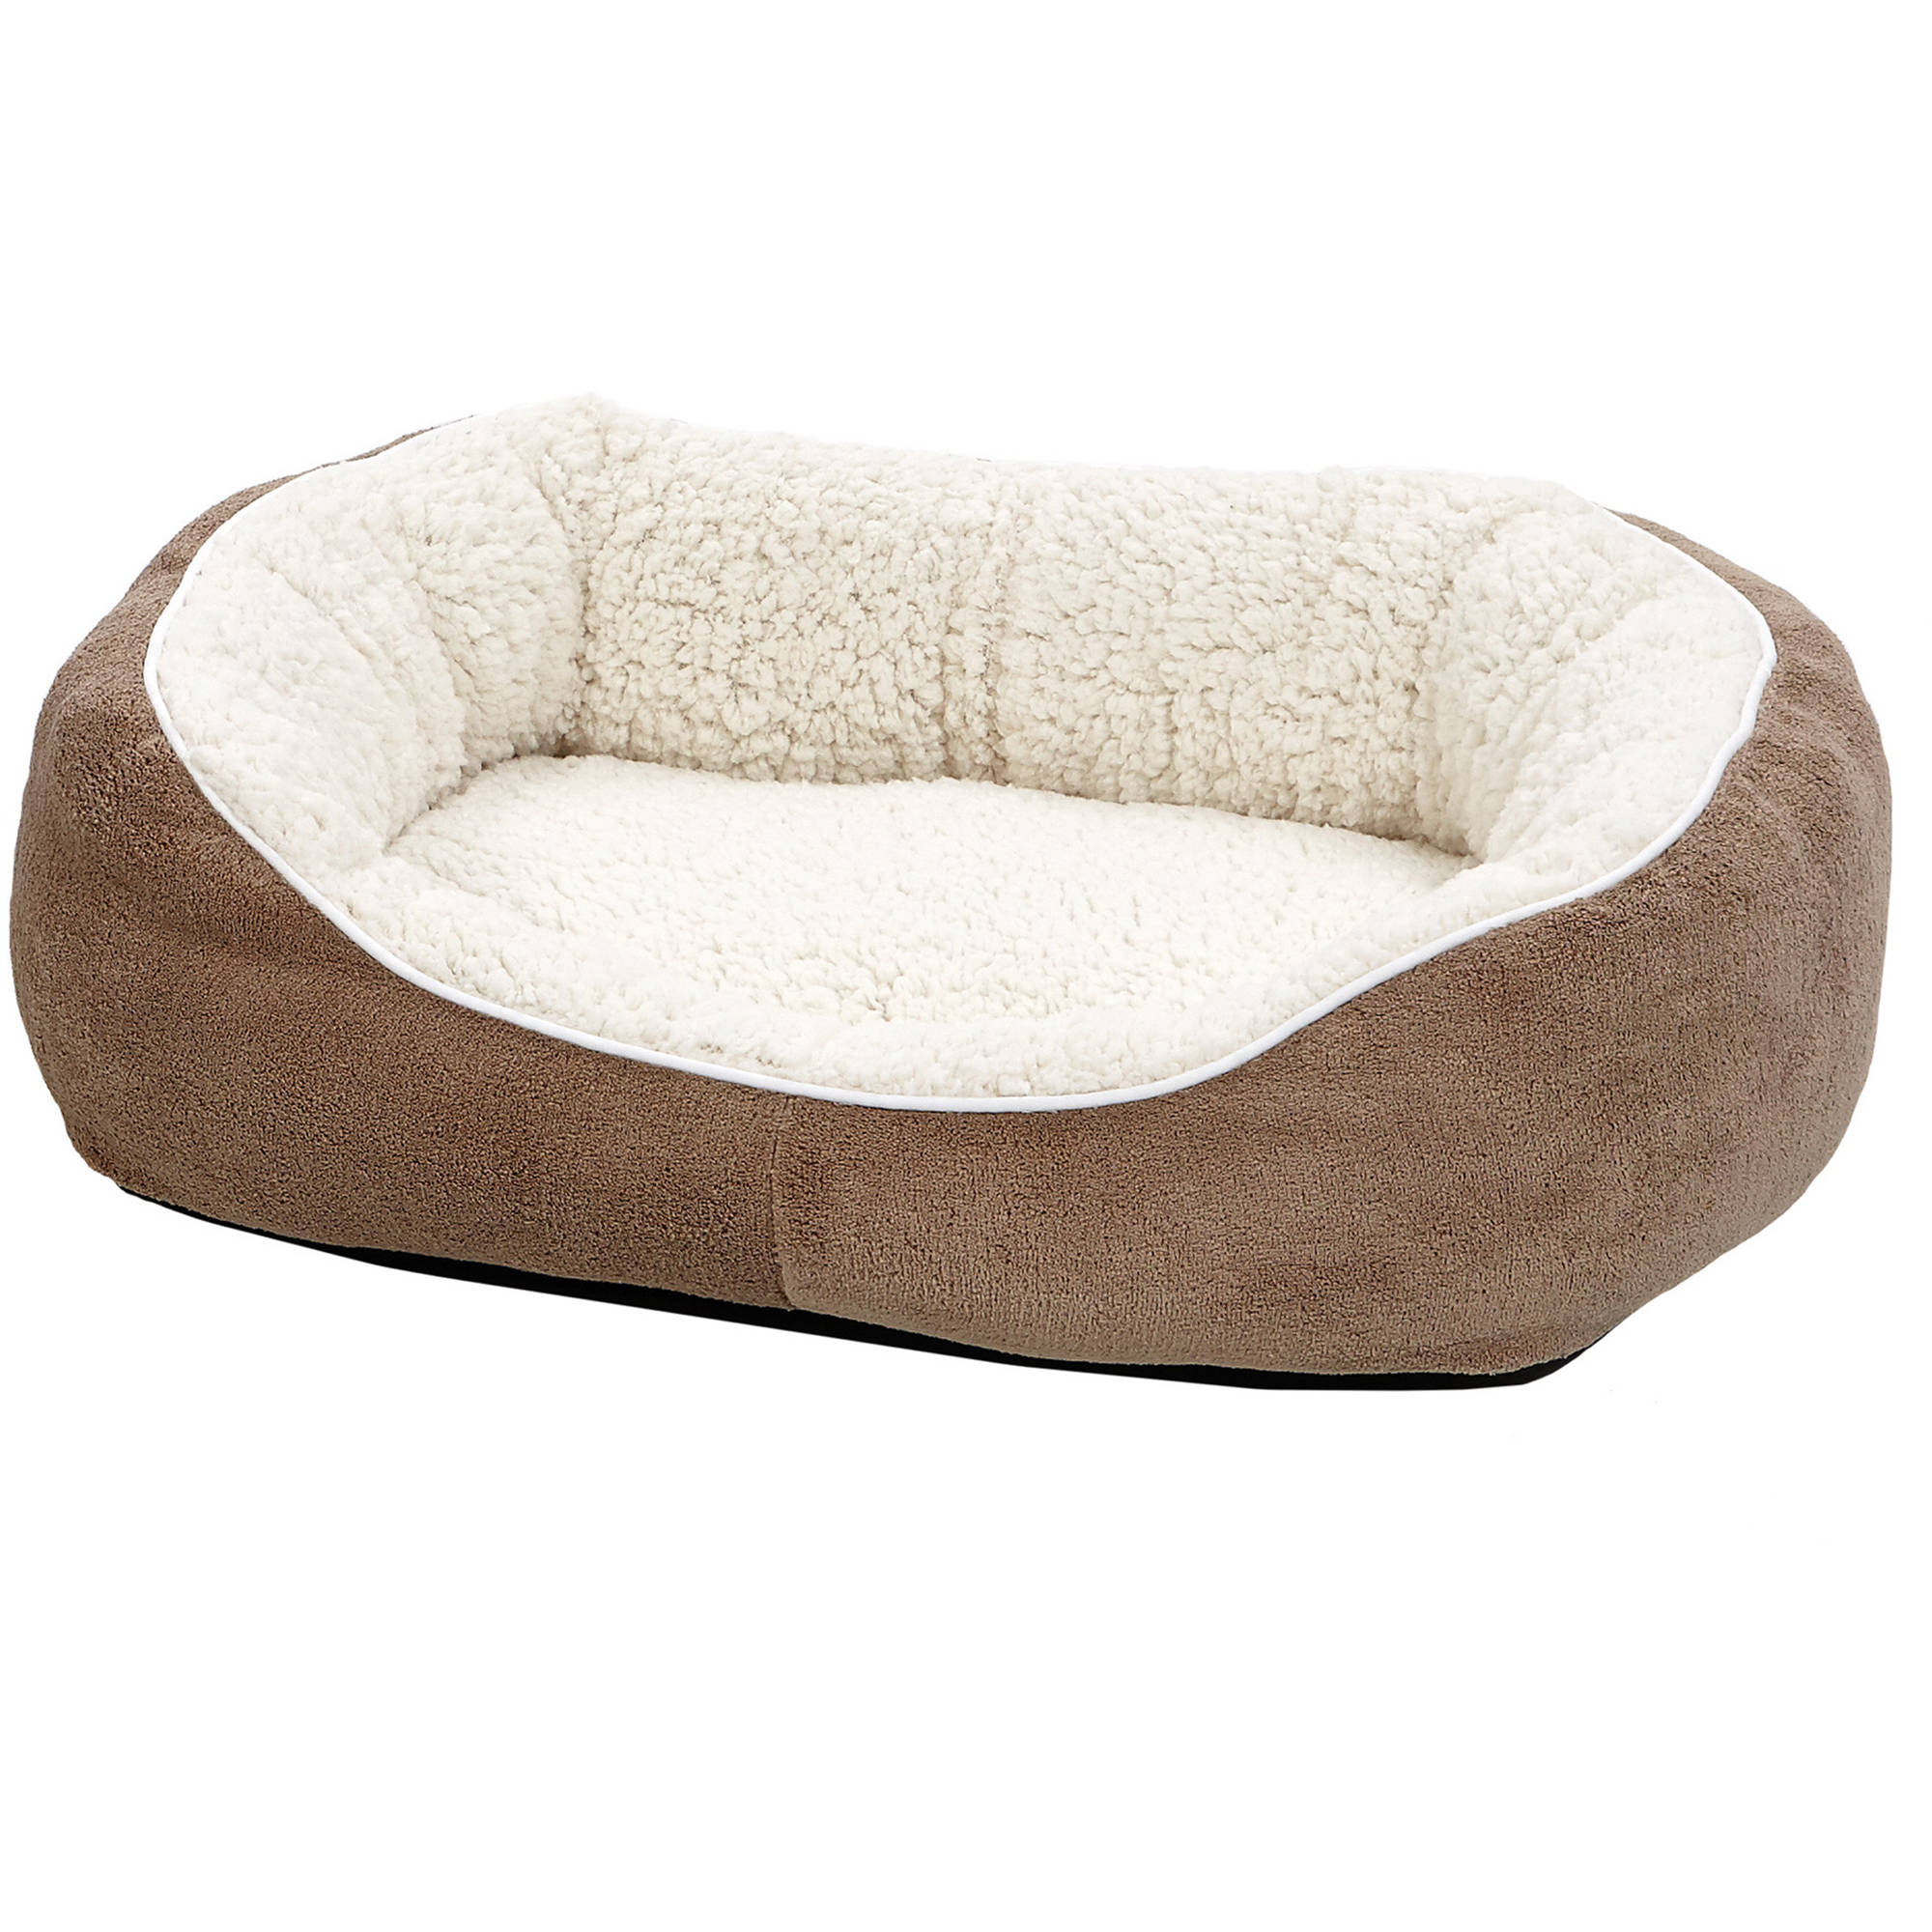 Midwest Ultra-Soft Fleece Dog & Cat Cuddle Bed, Small, Brown